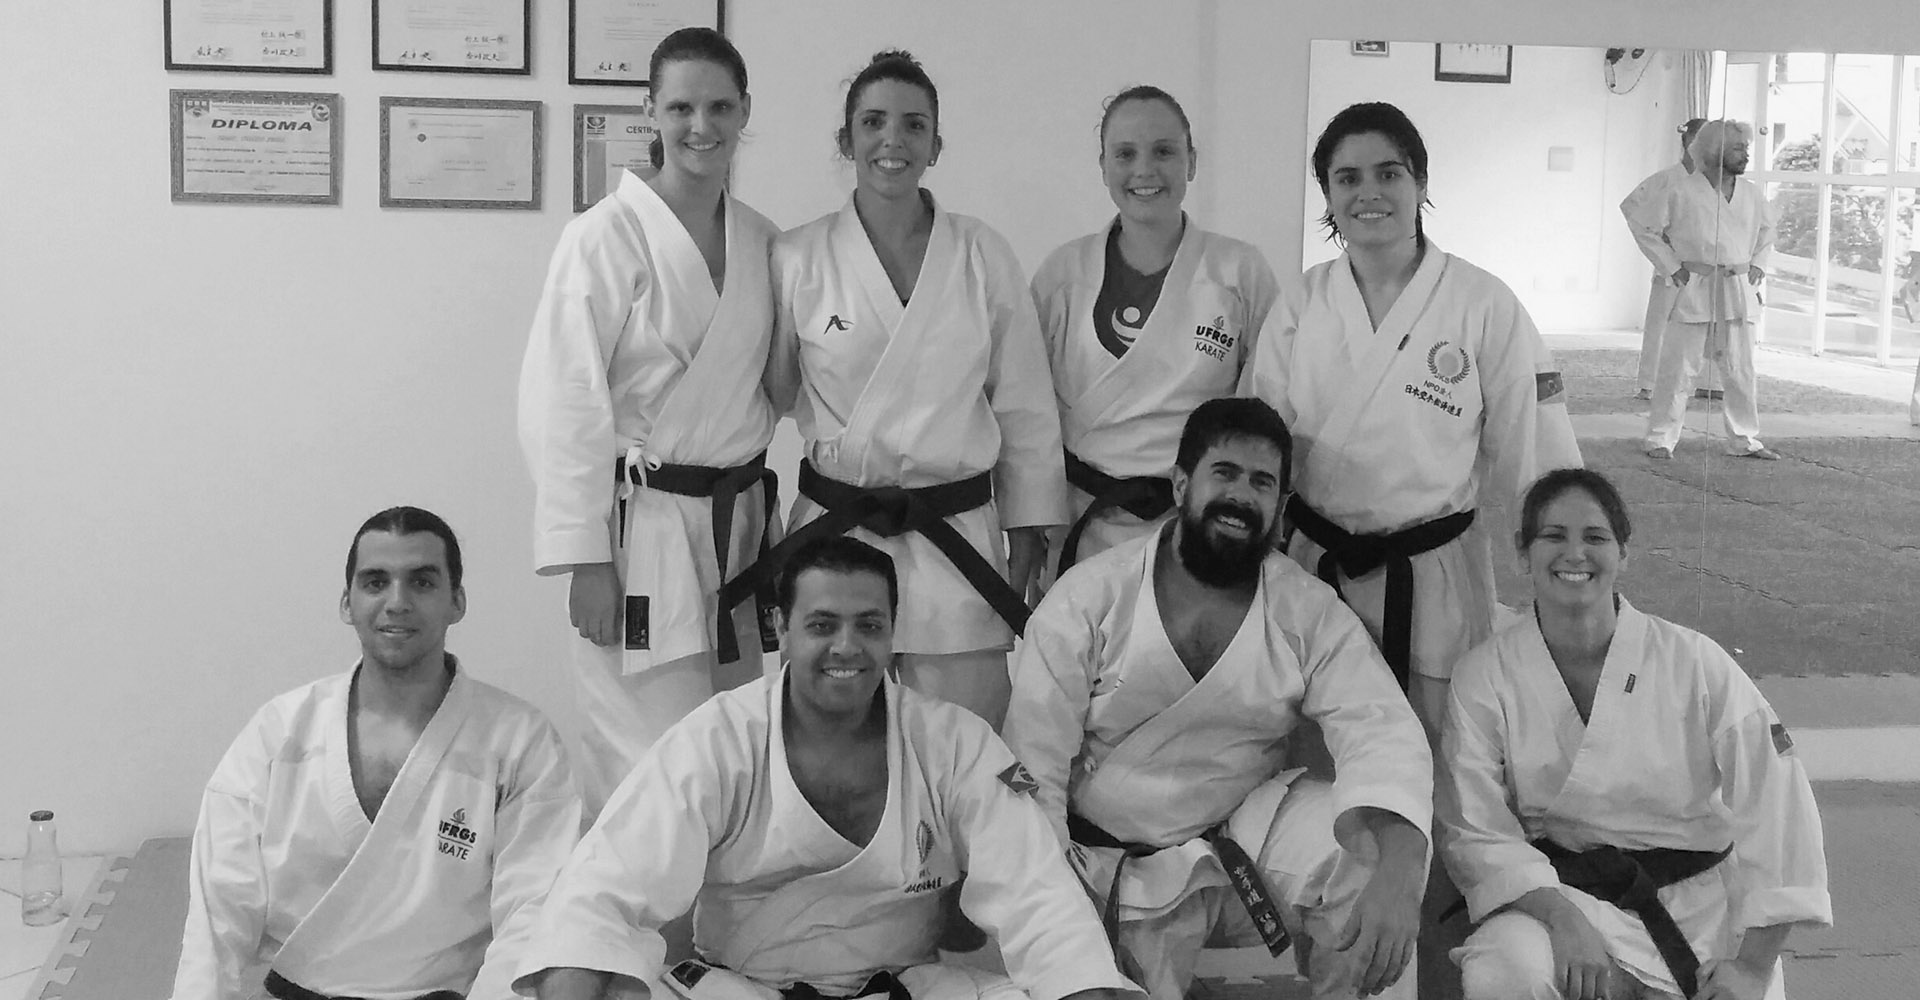 Haupenthal Sensei and Frosi Sensei, leaders of Canada and Brazil with members of the Institute